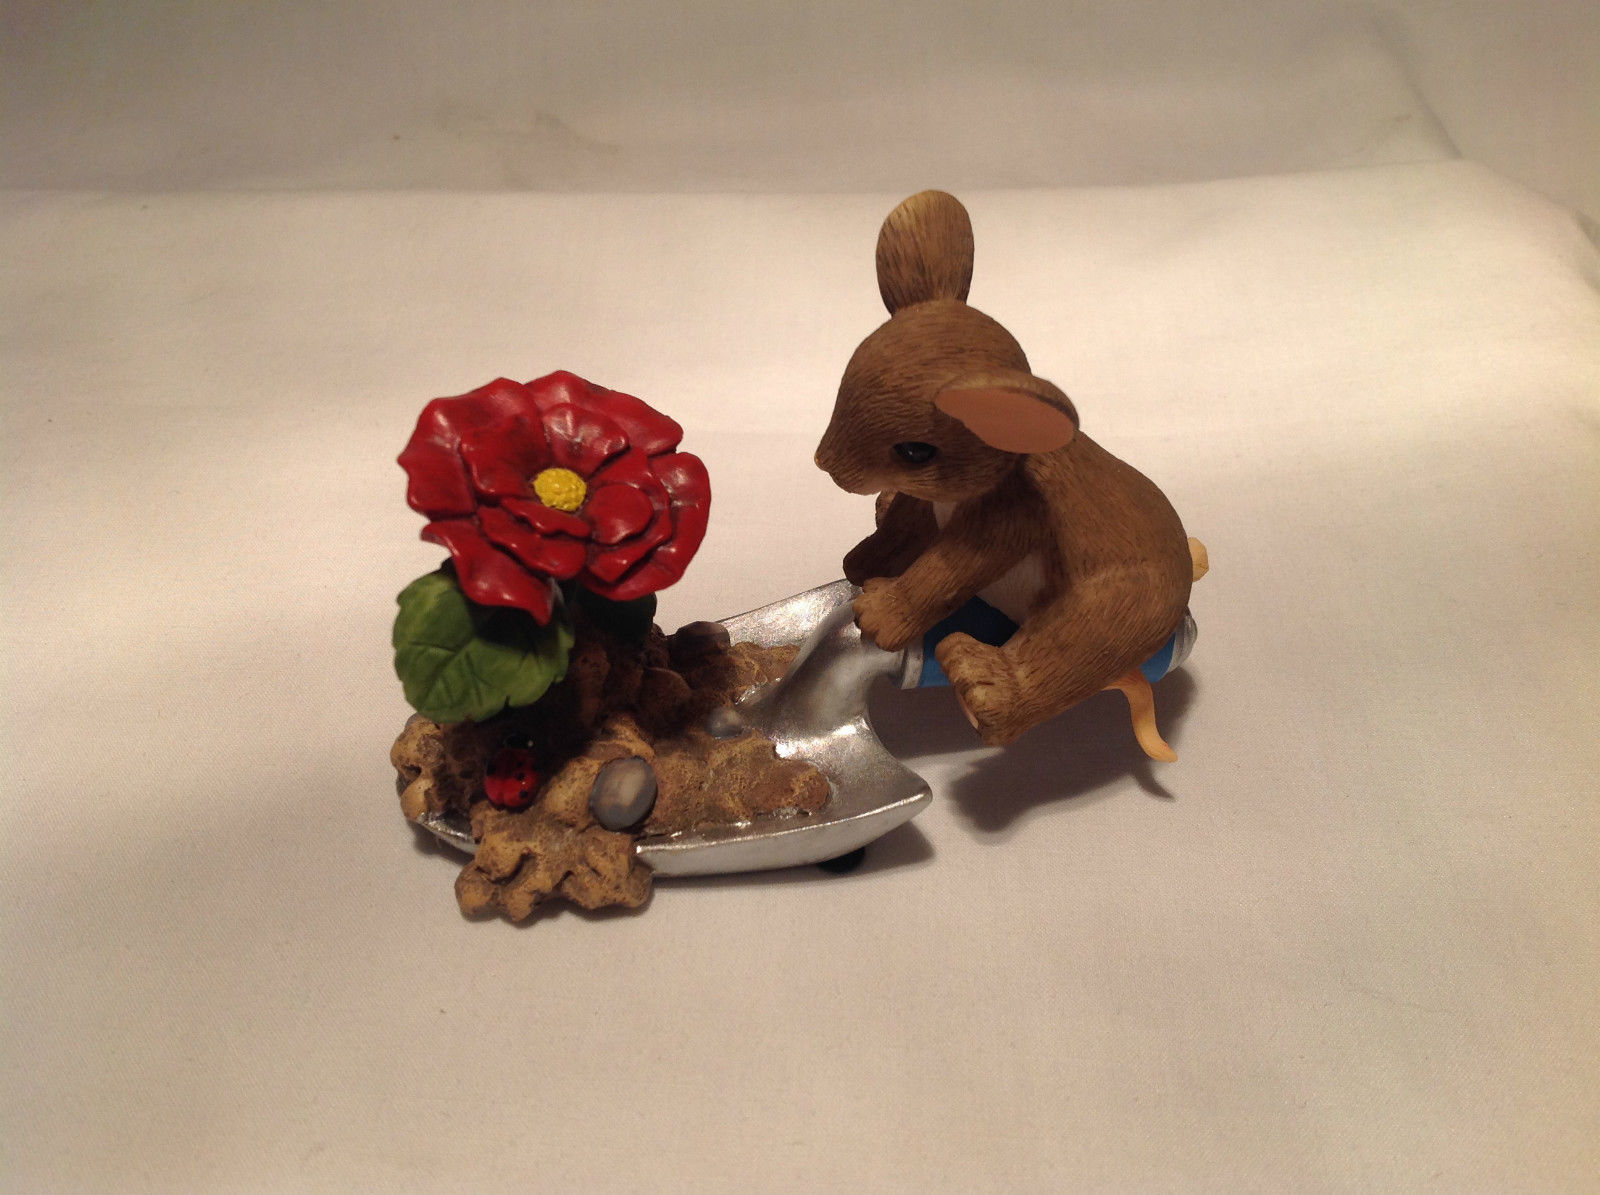 Mouse Sitting on Shovel Charming Tails Figurine Bloom Wherever You're Planted